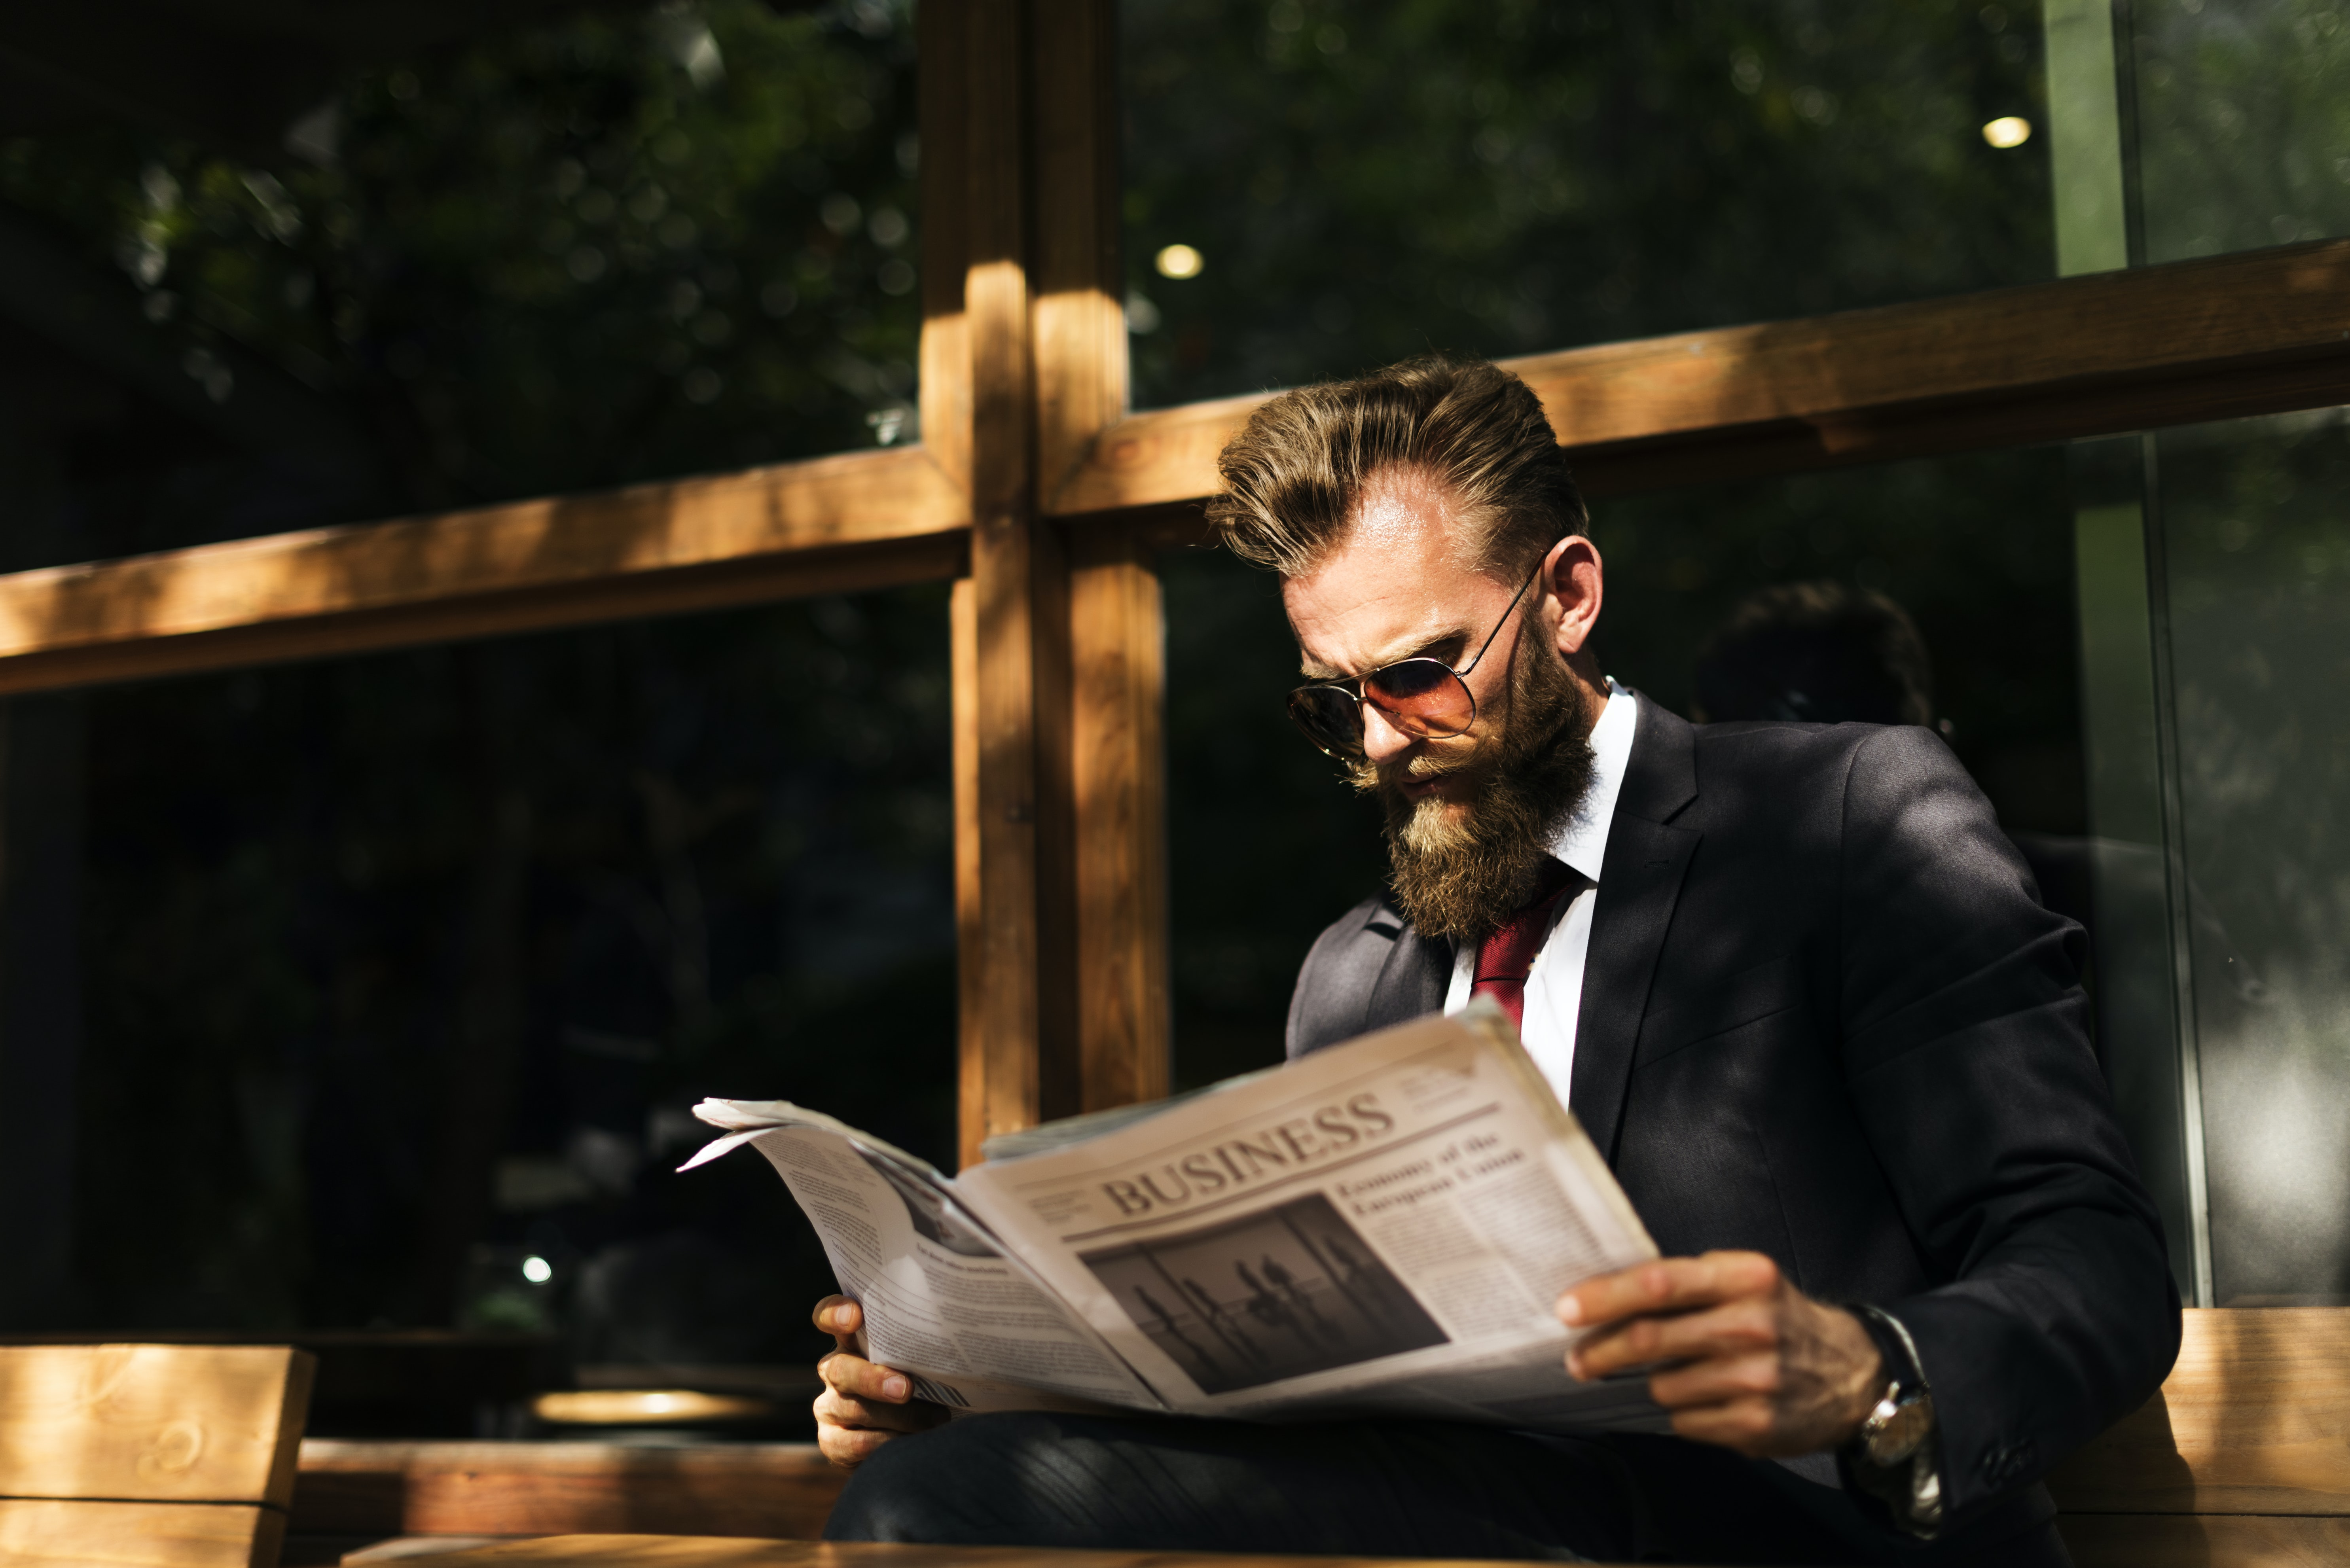 An elegant bearded man in a suit reading a newspaper on a wooden bench